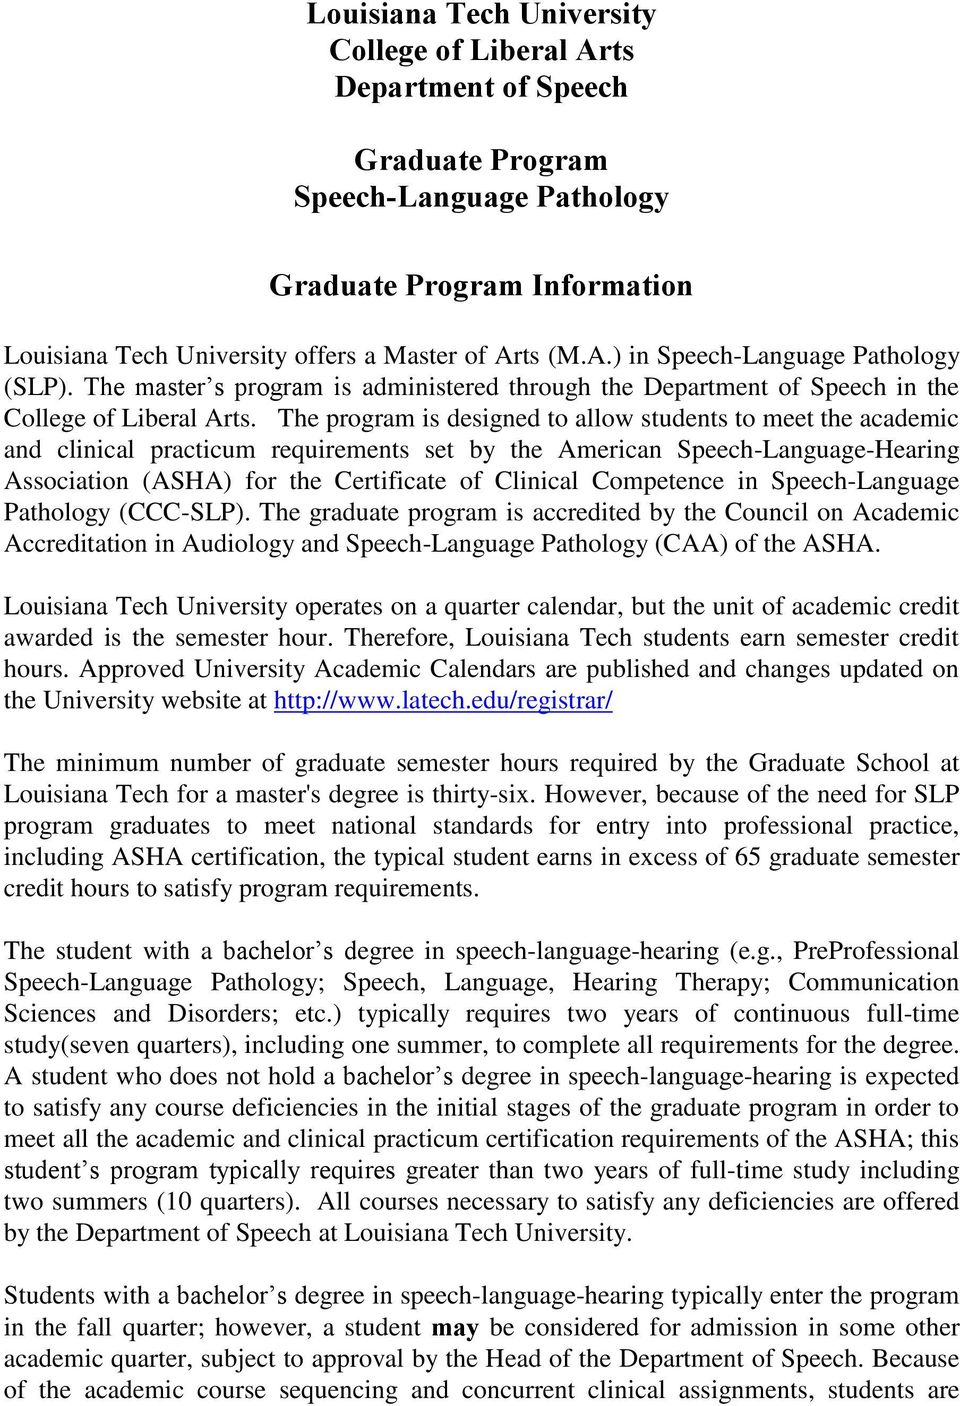 The program is designed to allow students to meet the academic and clinical practicum requirements set by the American Speech-Language-Hearing Association (ASHA) for the Certificate of Clinical